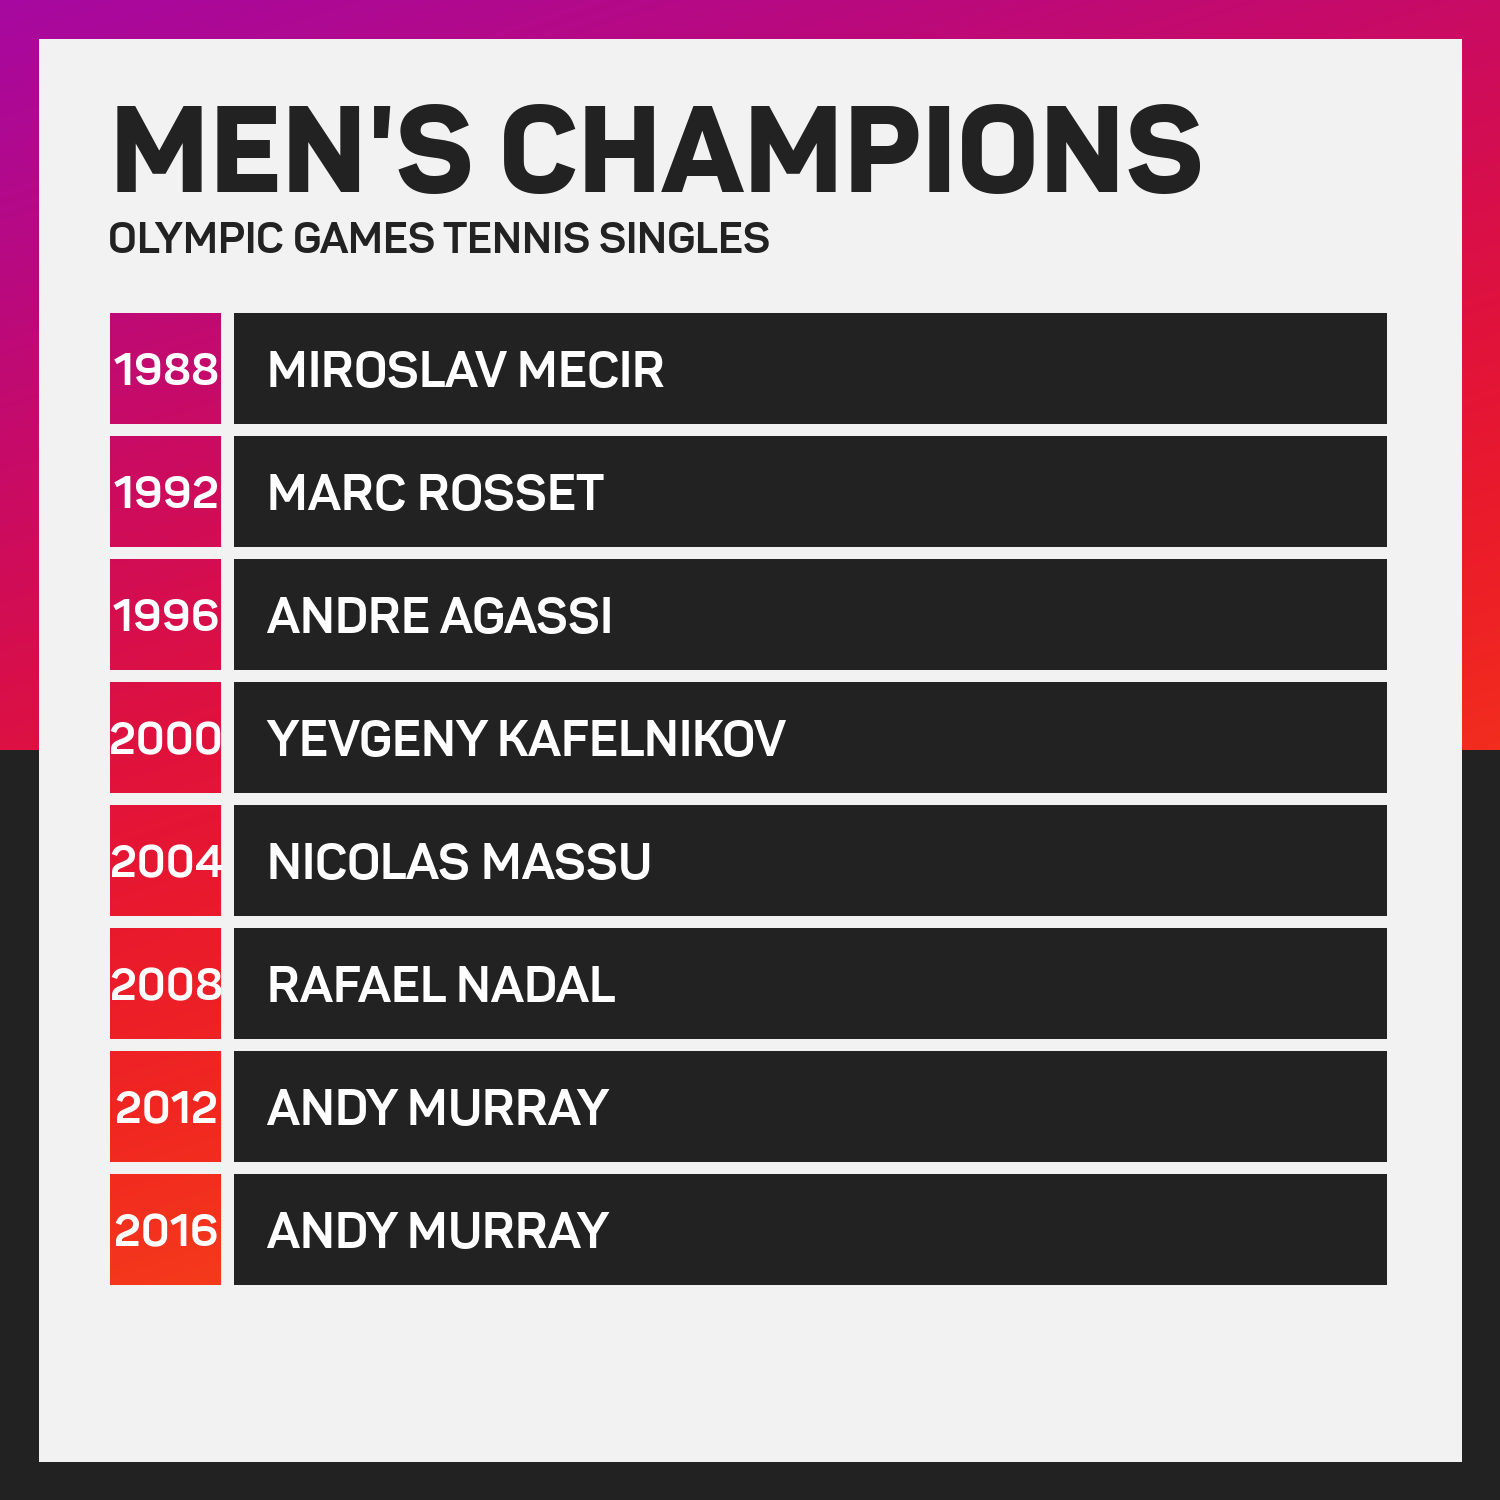 Olympic Games tennis men's champions since 1988